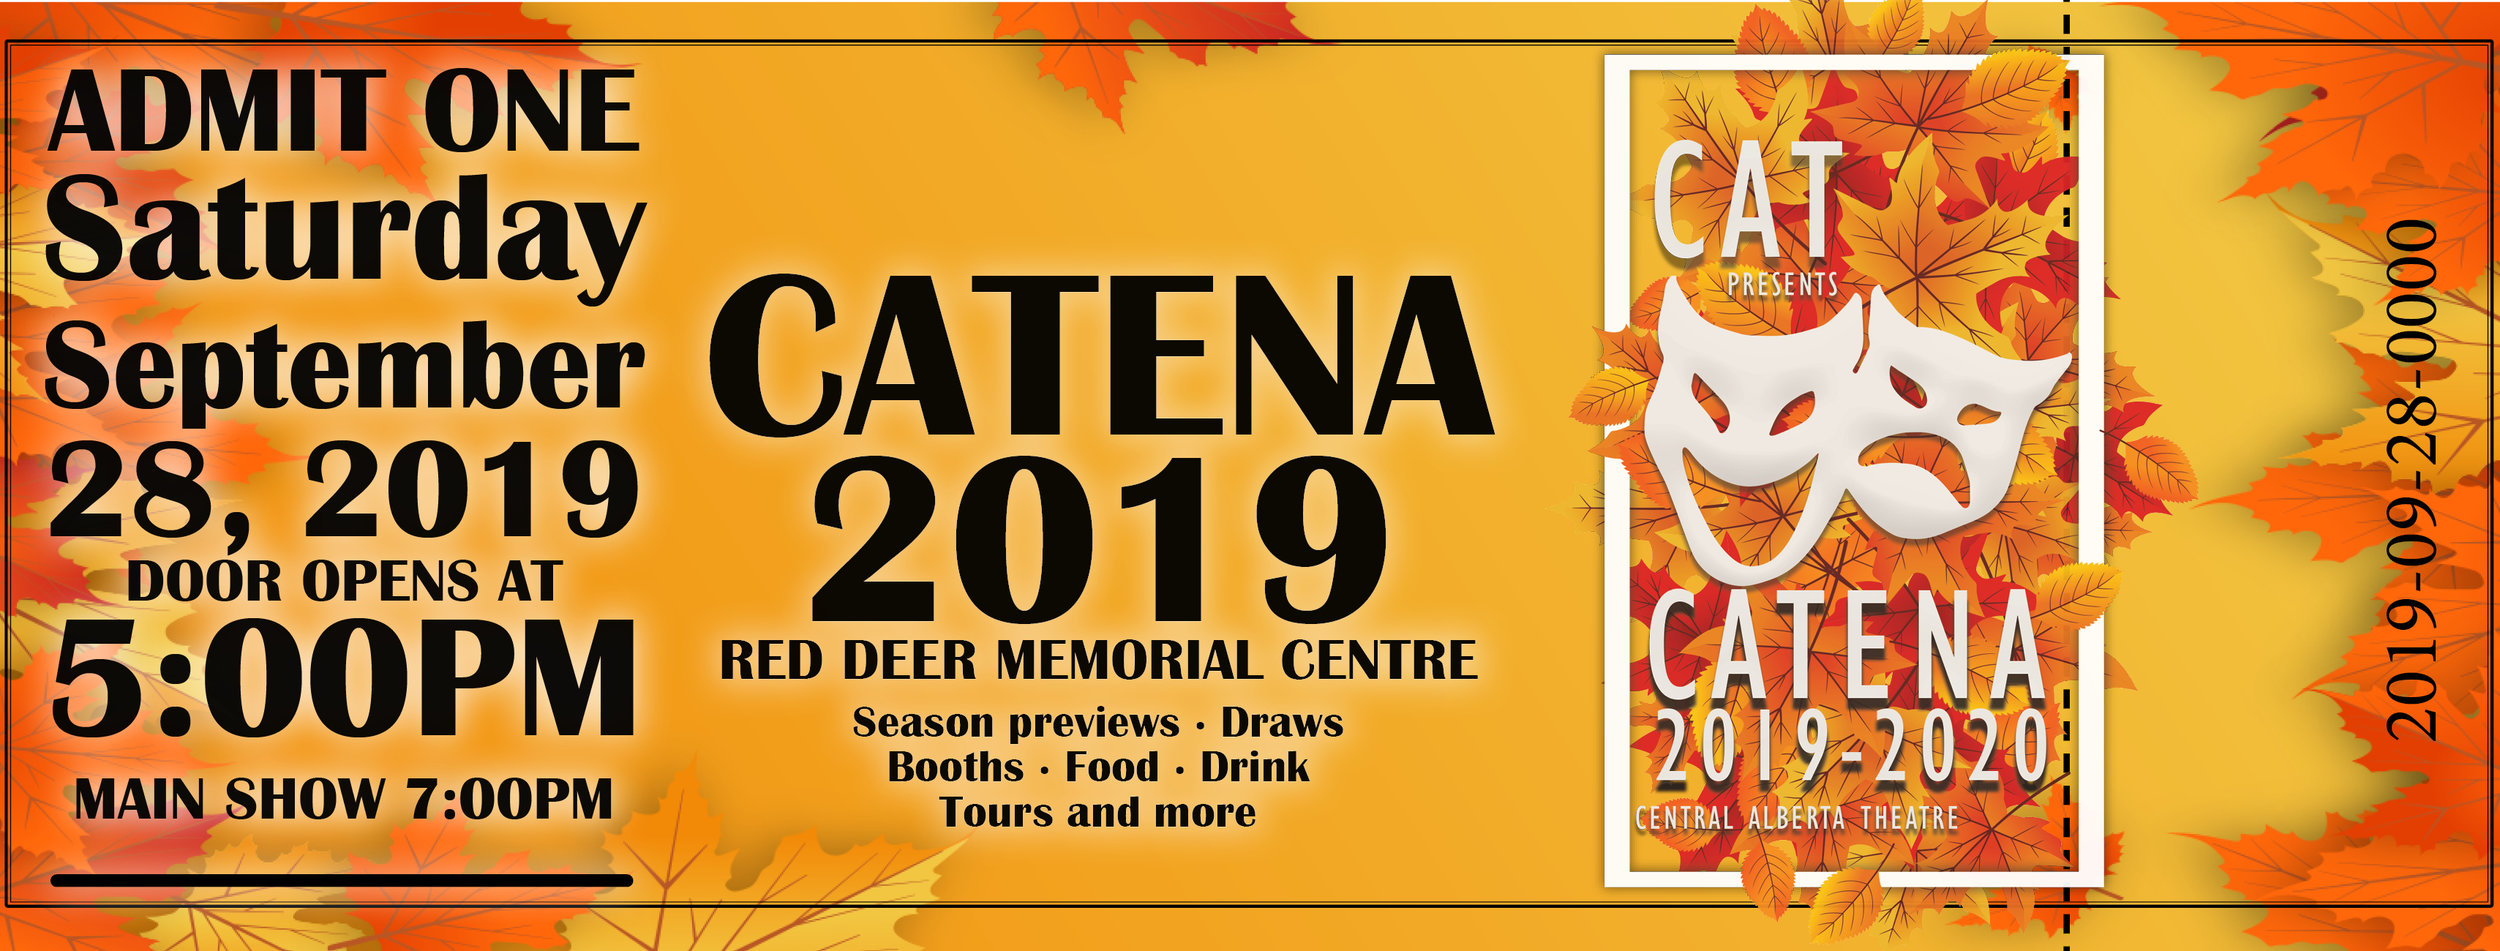 Face book Topper Group - Catena Tickets 2019-2020.jpg